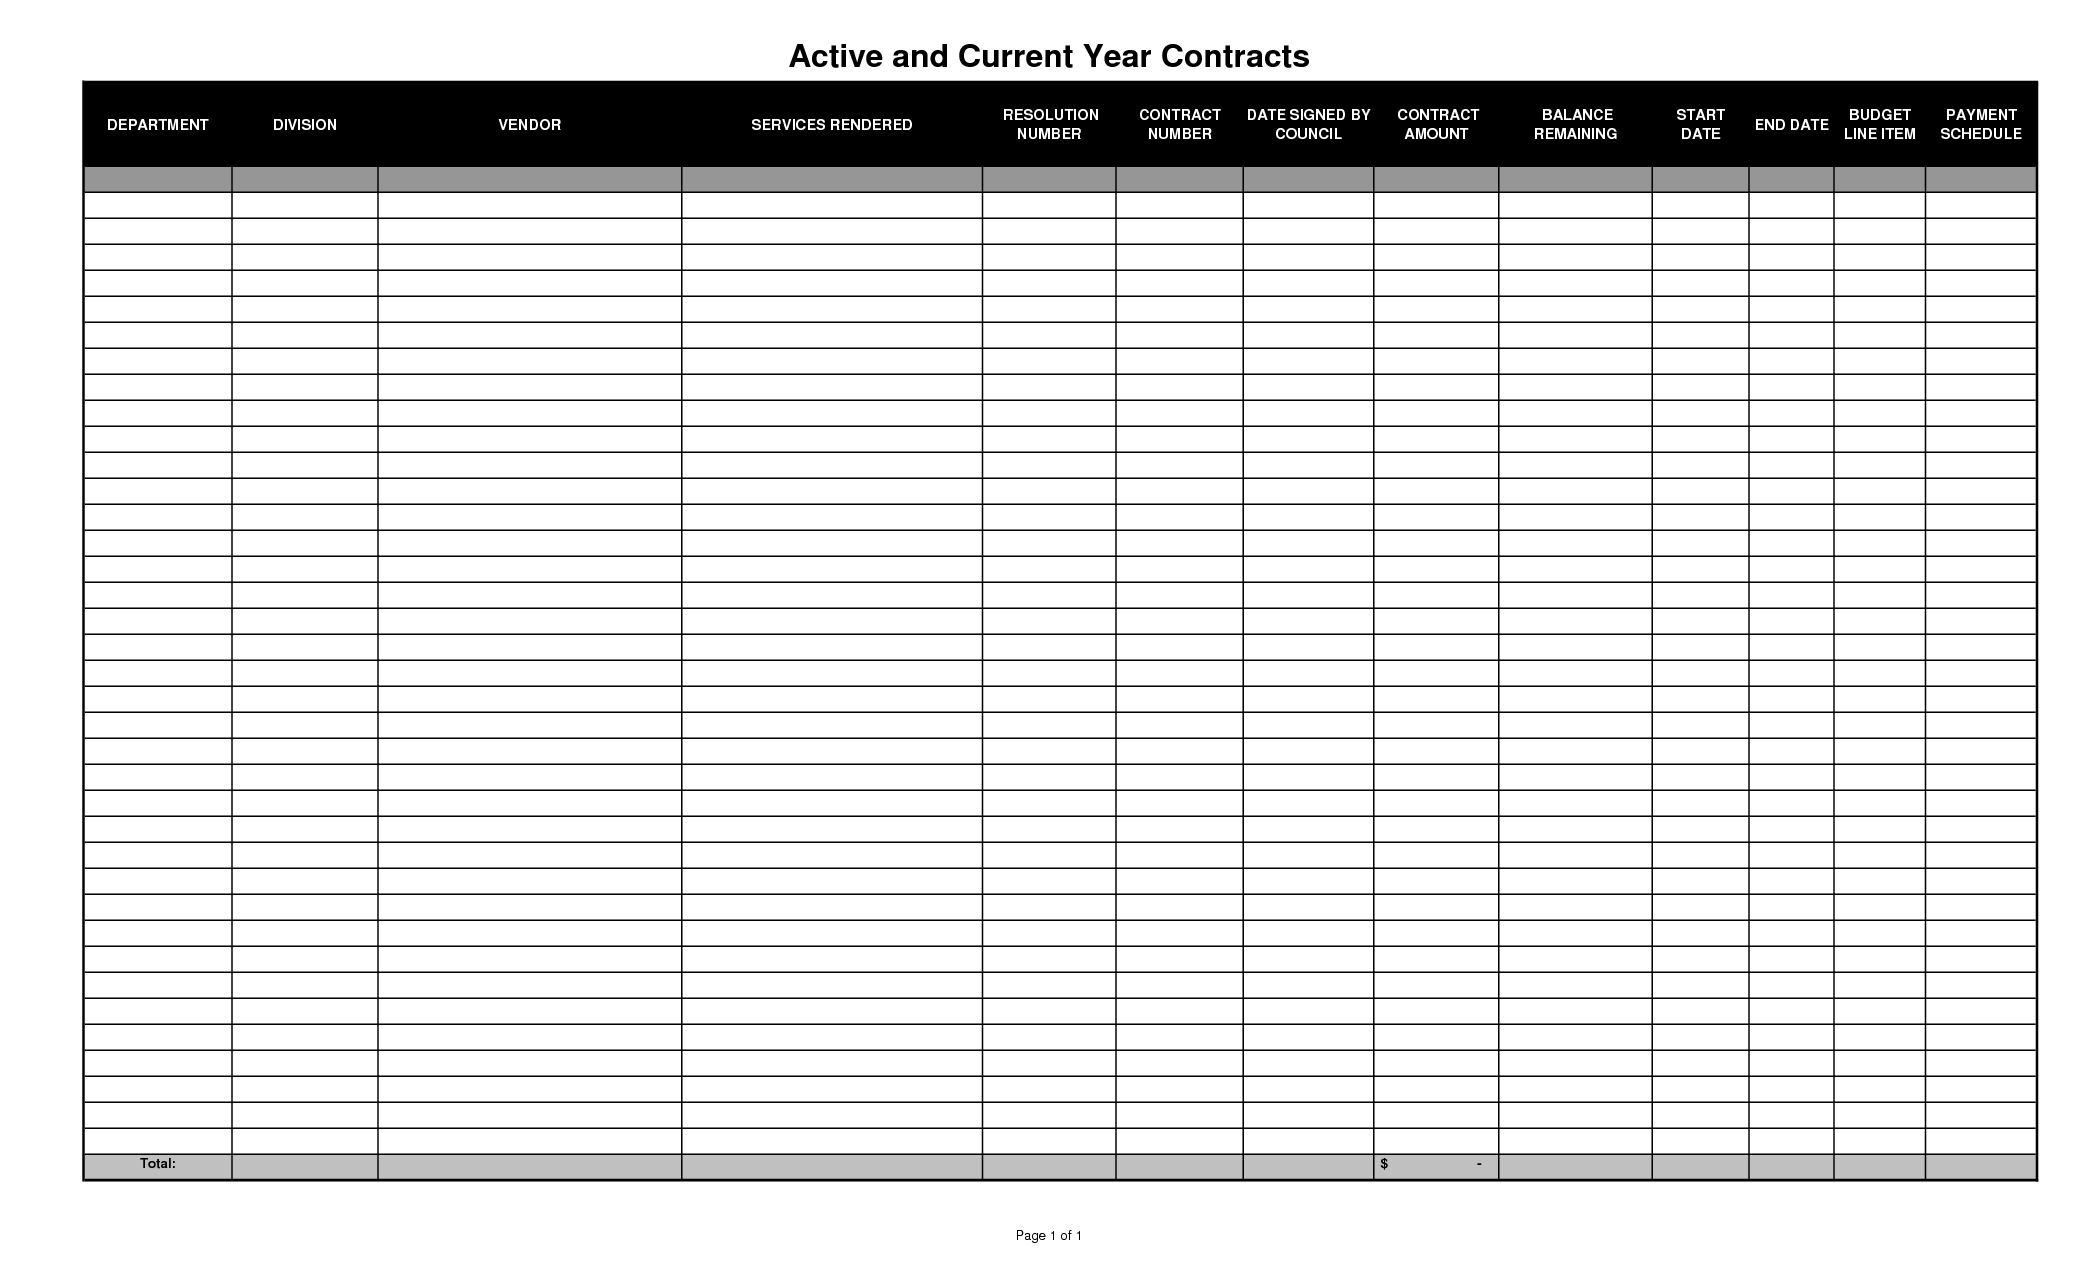 Awesome Download Blank Excel Spreadsheet Templates | Contracts Spreadsheet Template  Technology Documents Business Documents .  Free Printable Spreadsheets Blank